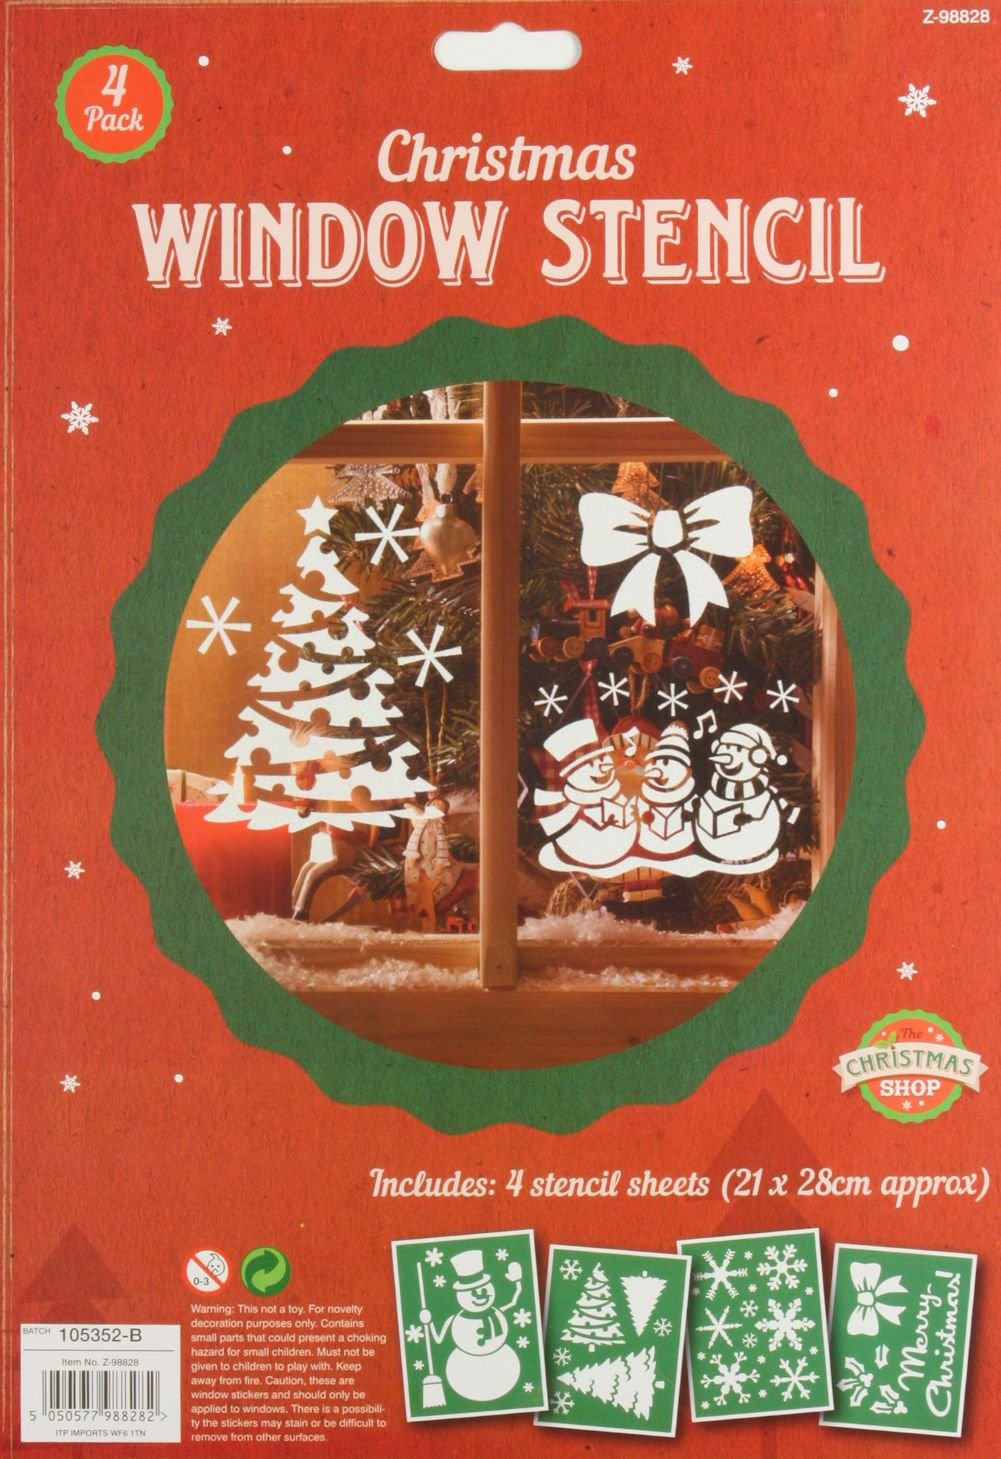 Christmas Sprays Uk.1 X Pack Of 4 Plastic Christmas Window Stencils Home Spray Snow Reuseable Xmas Uk